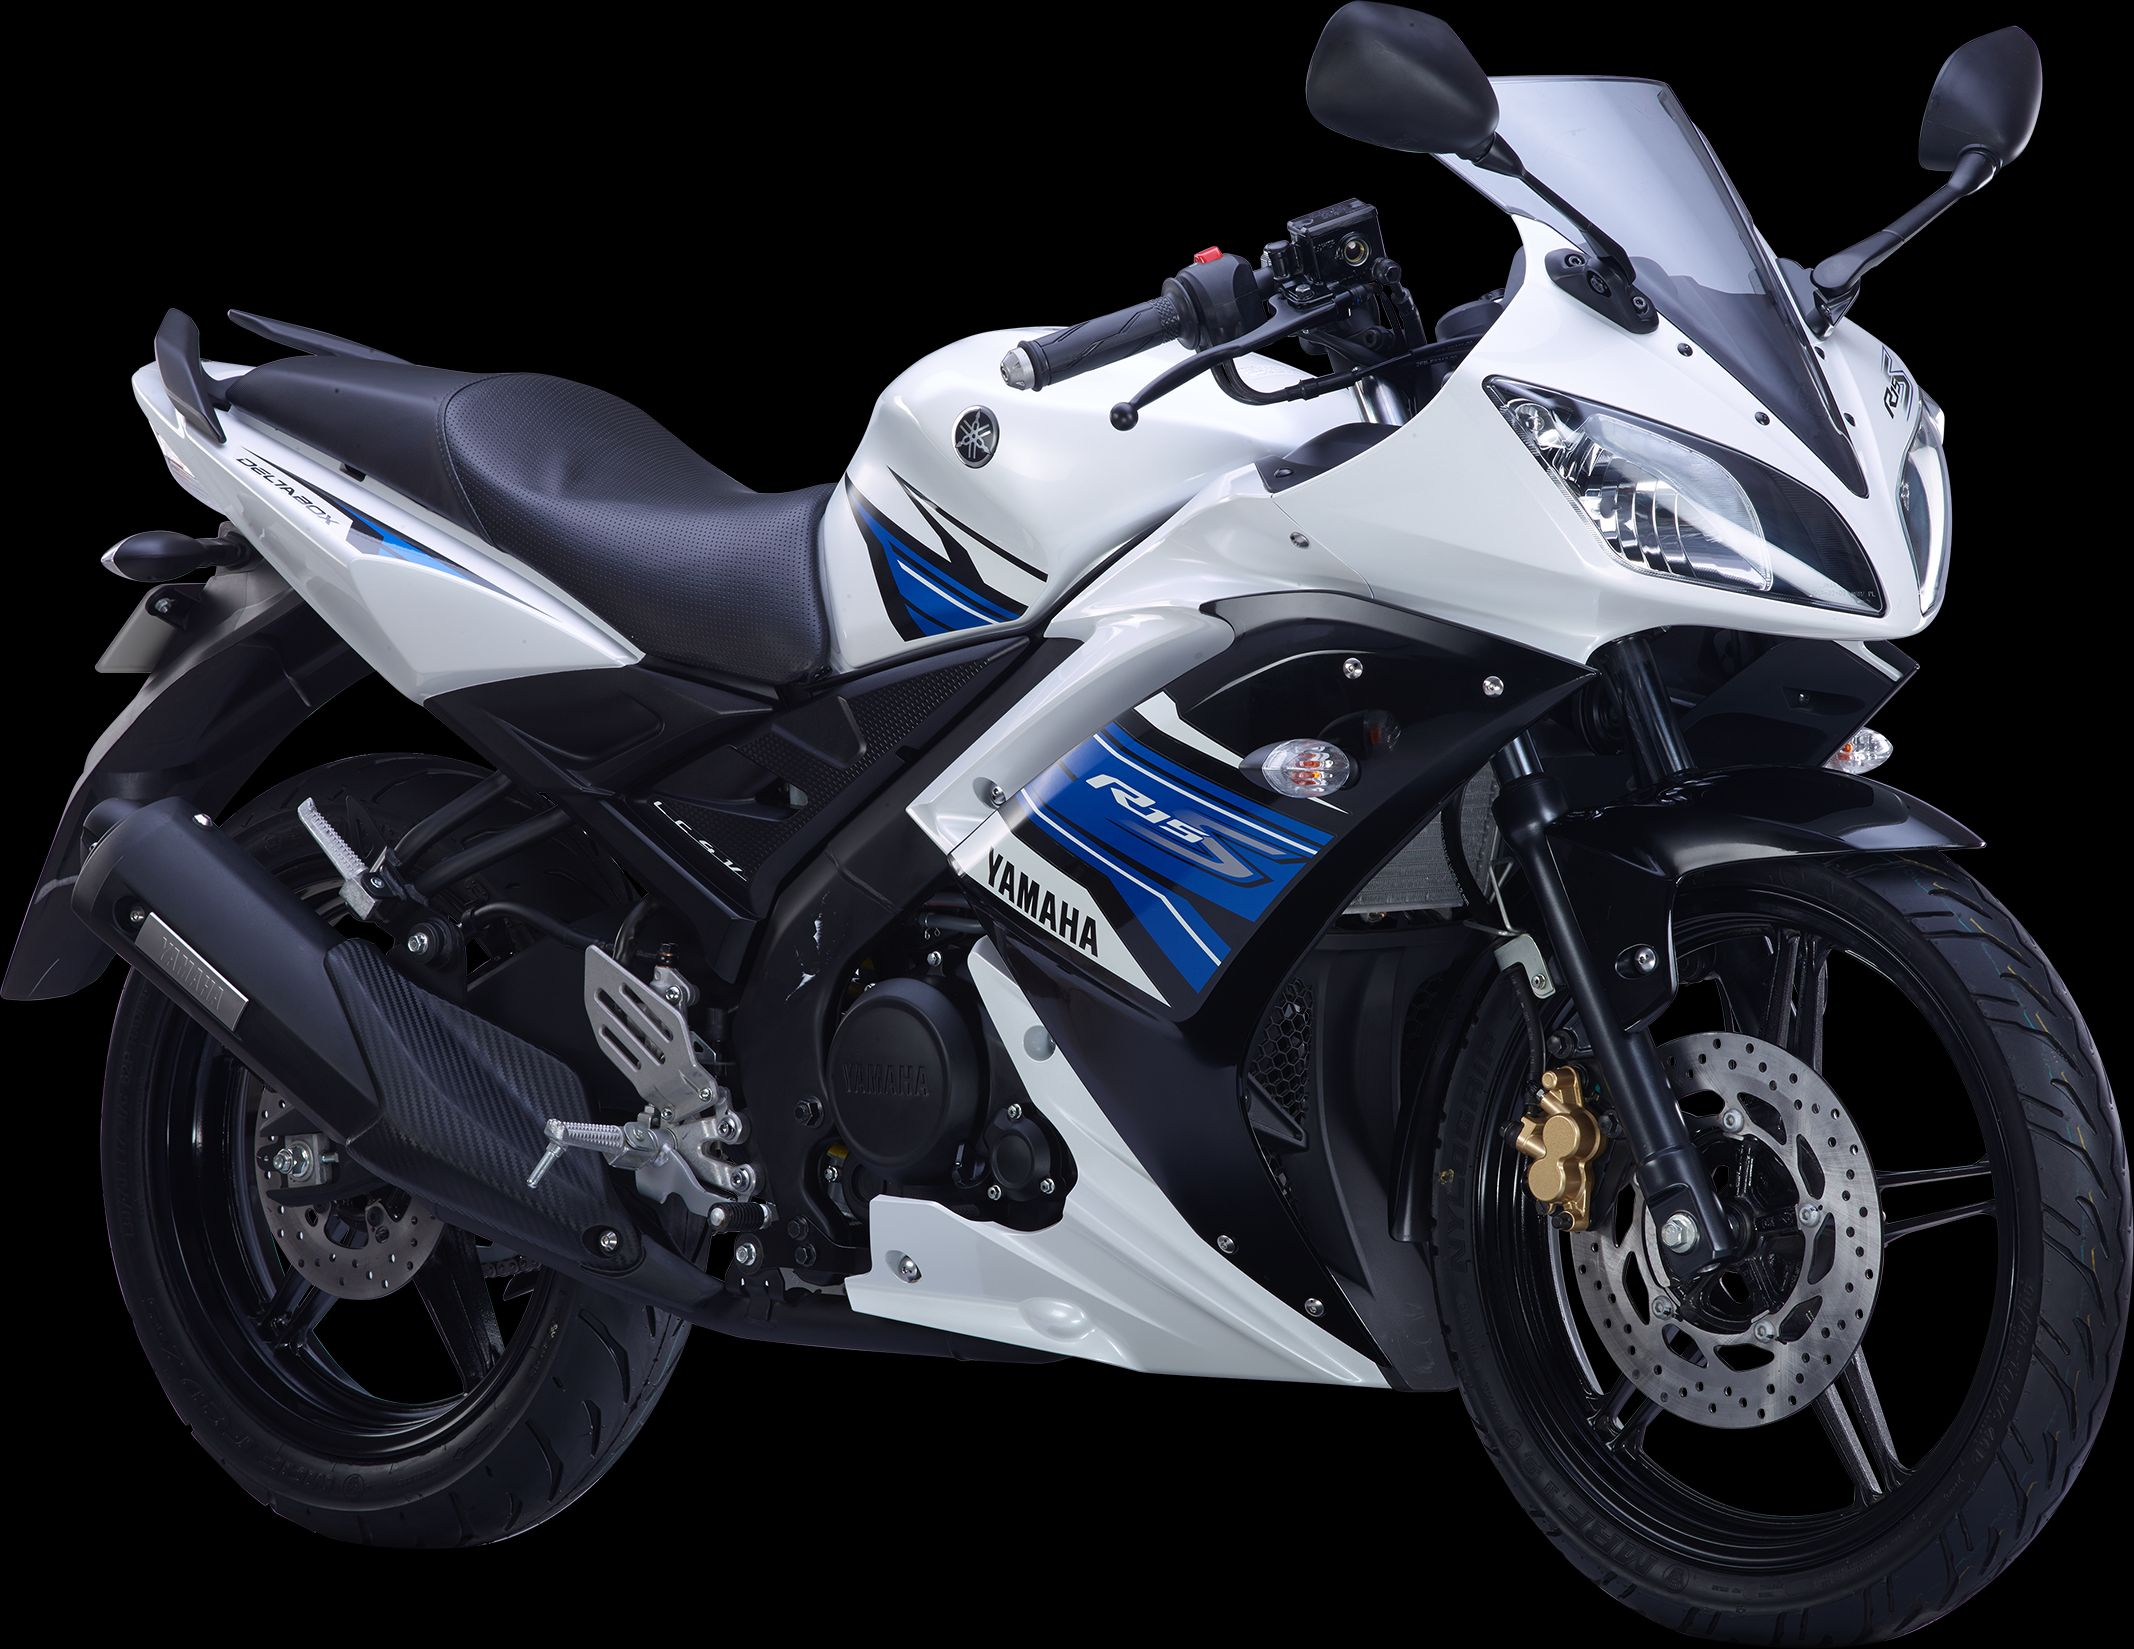 Barely few hours back we brought to you the exclusive spec sheet of the yamaha yzf r15 s from nepal and yamaha has moments back confirmed the launch of the